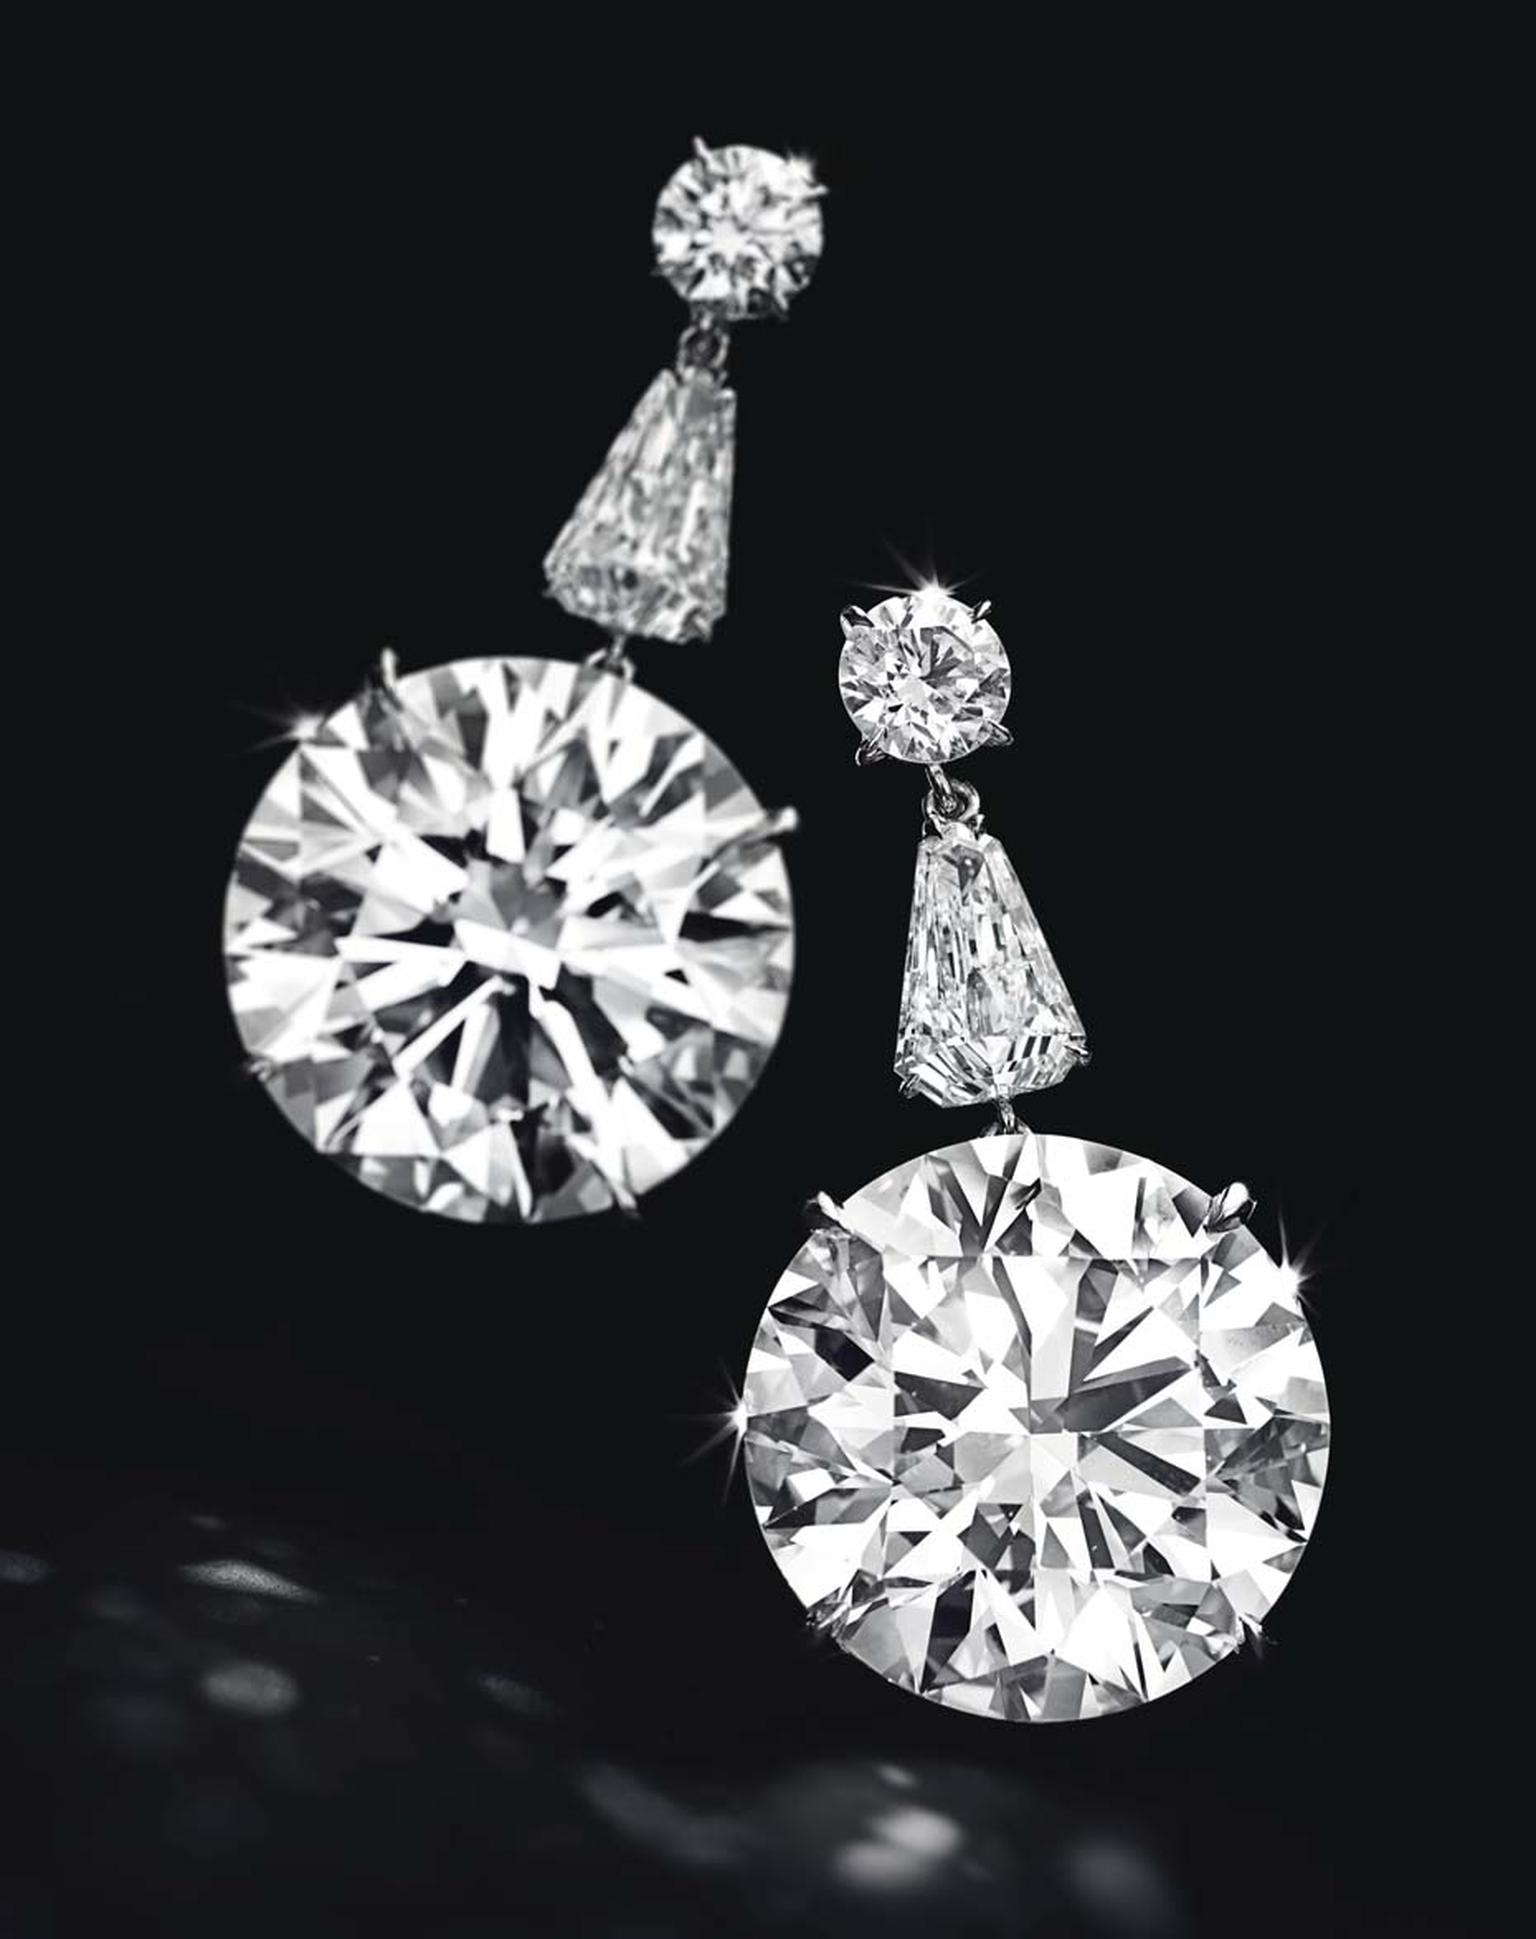 Lot 255, a sensational pair of diamond ear pendants, each set with a circular-cut diamond weighing approximately 22.50 and 22.31ct, mounted in platinum (estimate: US$7-10 million)